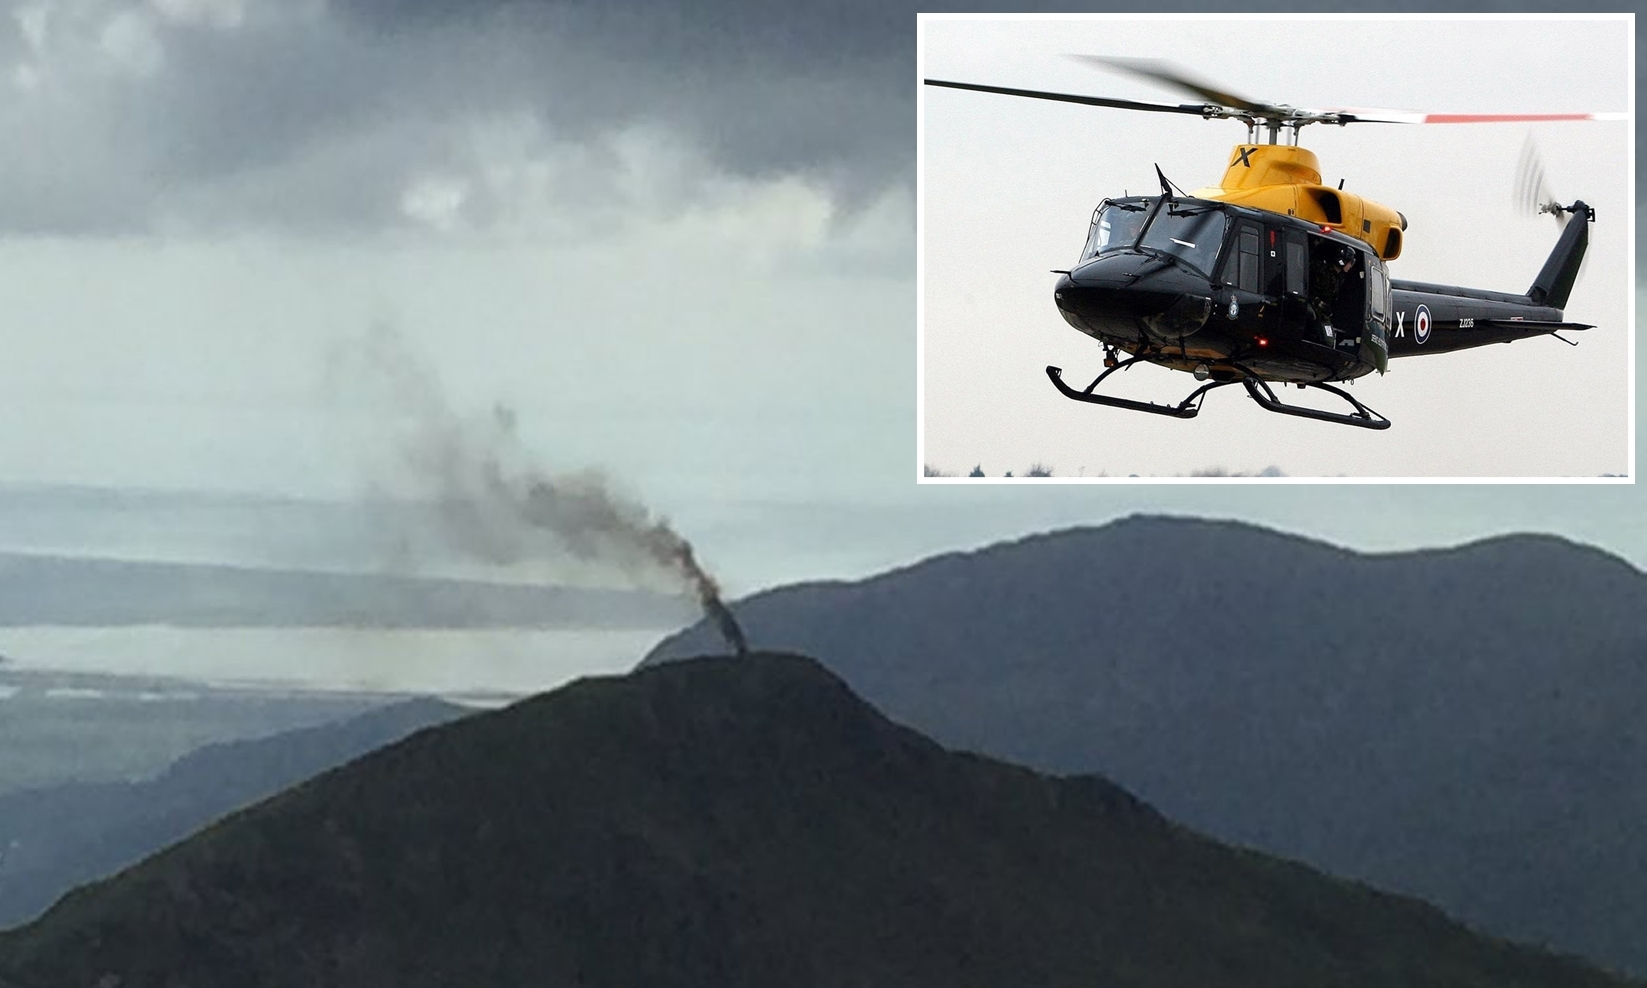 Smoke rising from the mountain after the incident. Inset: a Griffin helicopter of the same type involved.